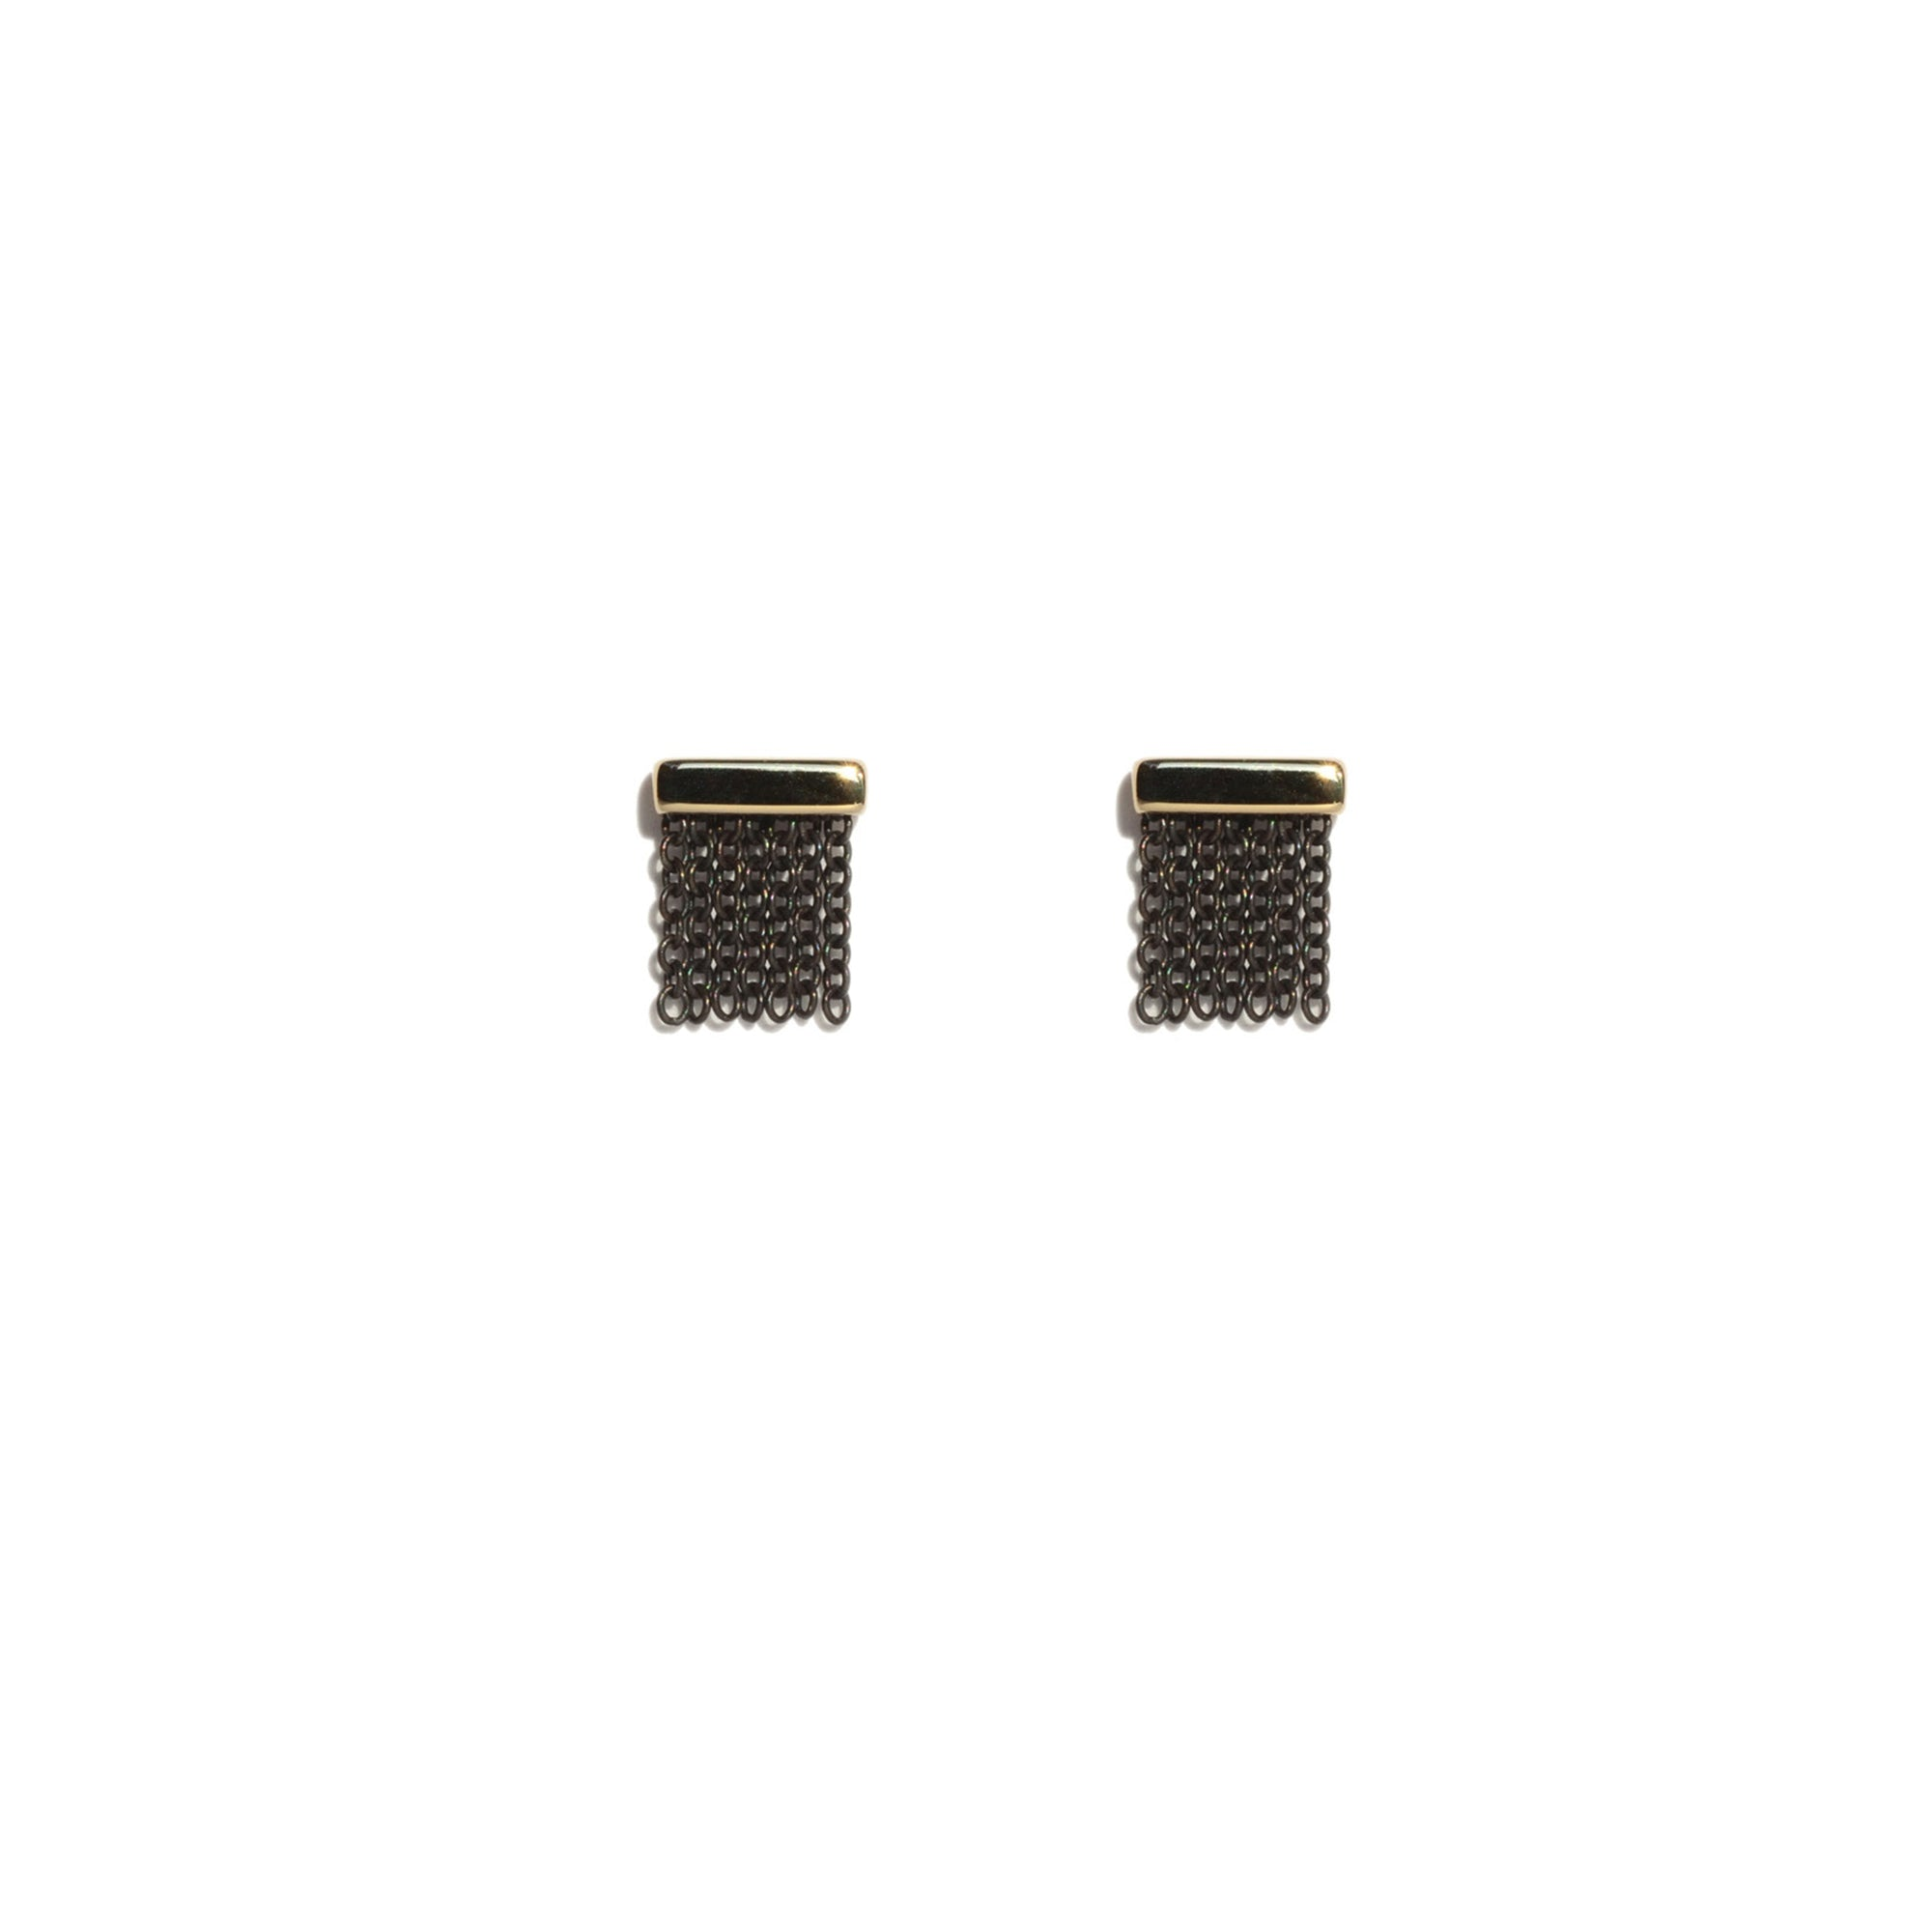 Mini Fringe Stud Earrings - 14k Yellow Gold & Oxidized Silver - Talisman Collection Fine Jewelers